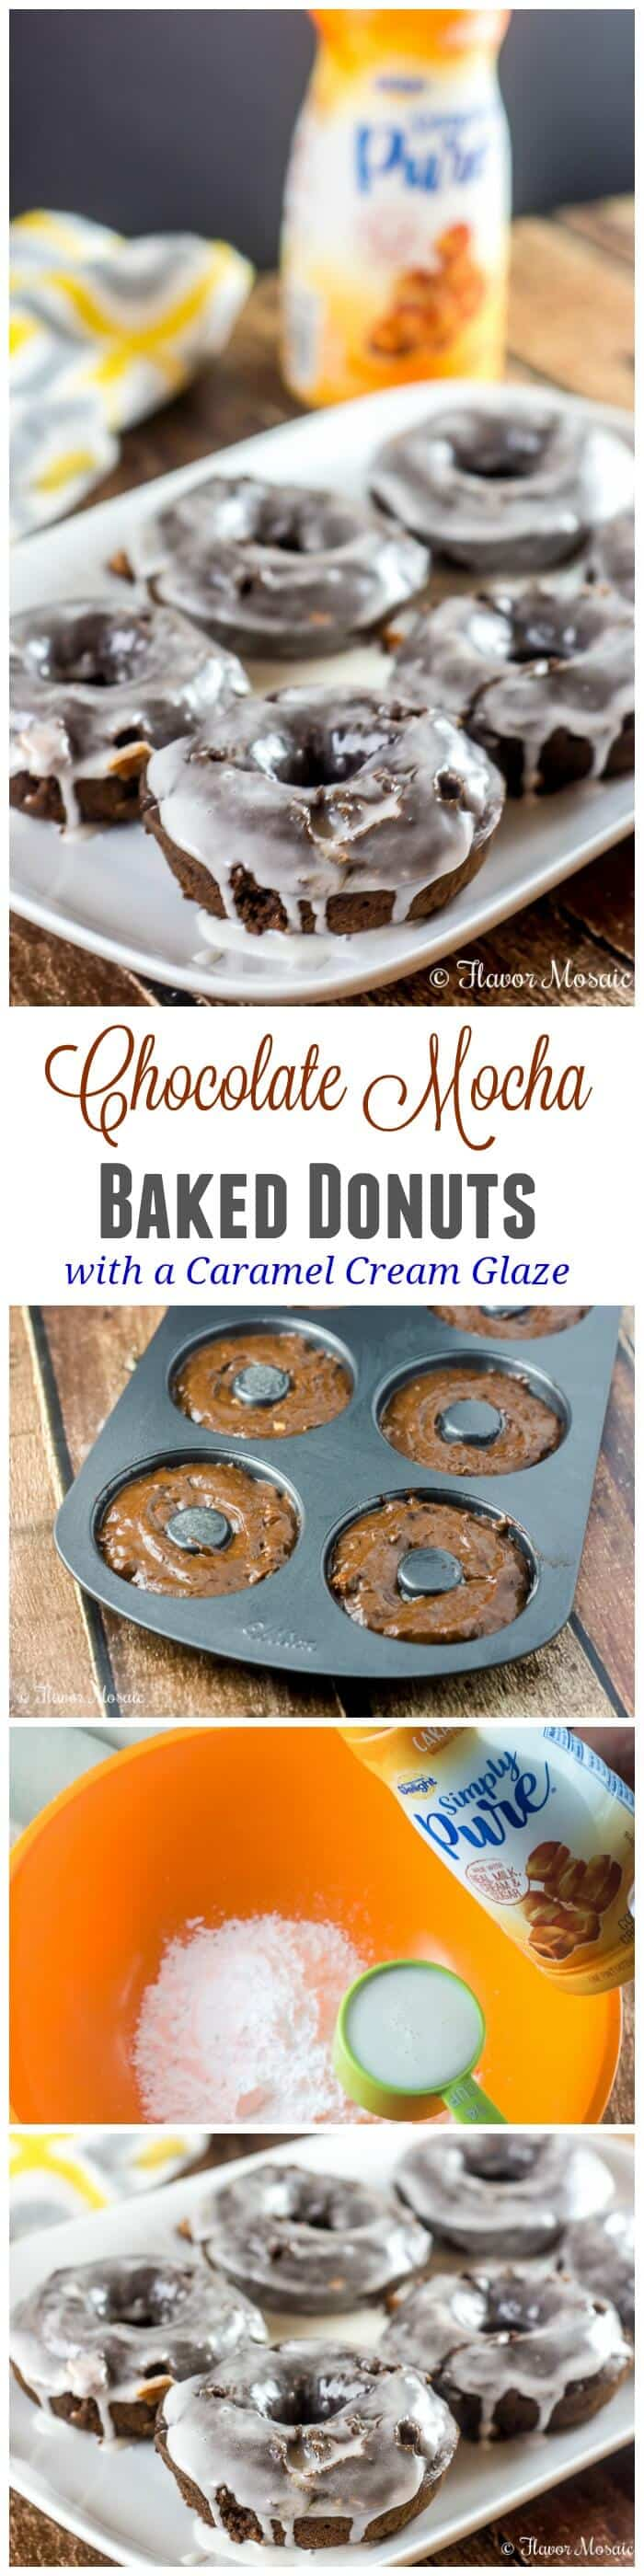 Chocolate Mocha Baked Donuts with a Caramel Cream Glaze make a sweet and delicious breakfast, and when paired with a cup of hot coffee, get you energized for the morning and the rest of your day. #IDSimplyPure #ad